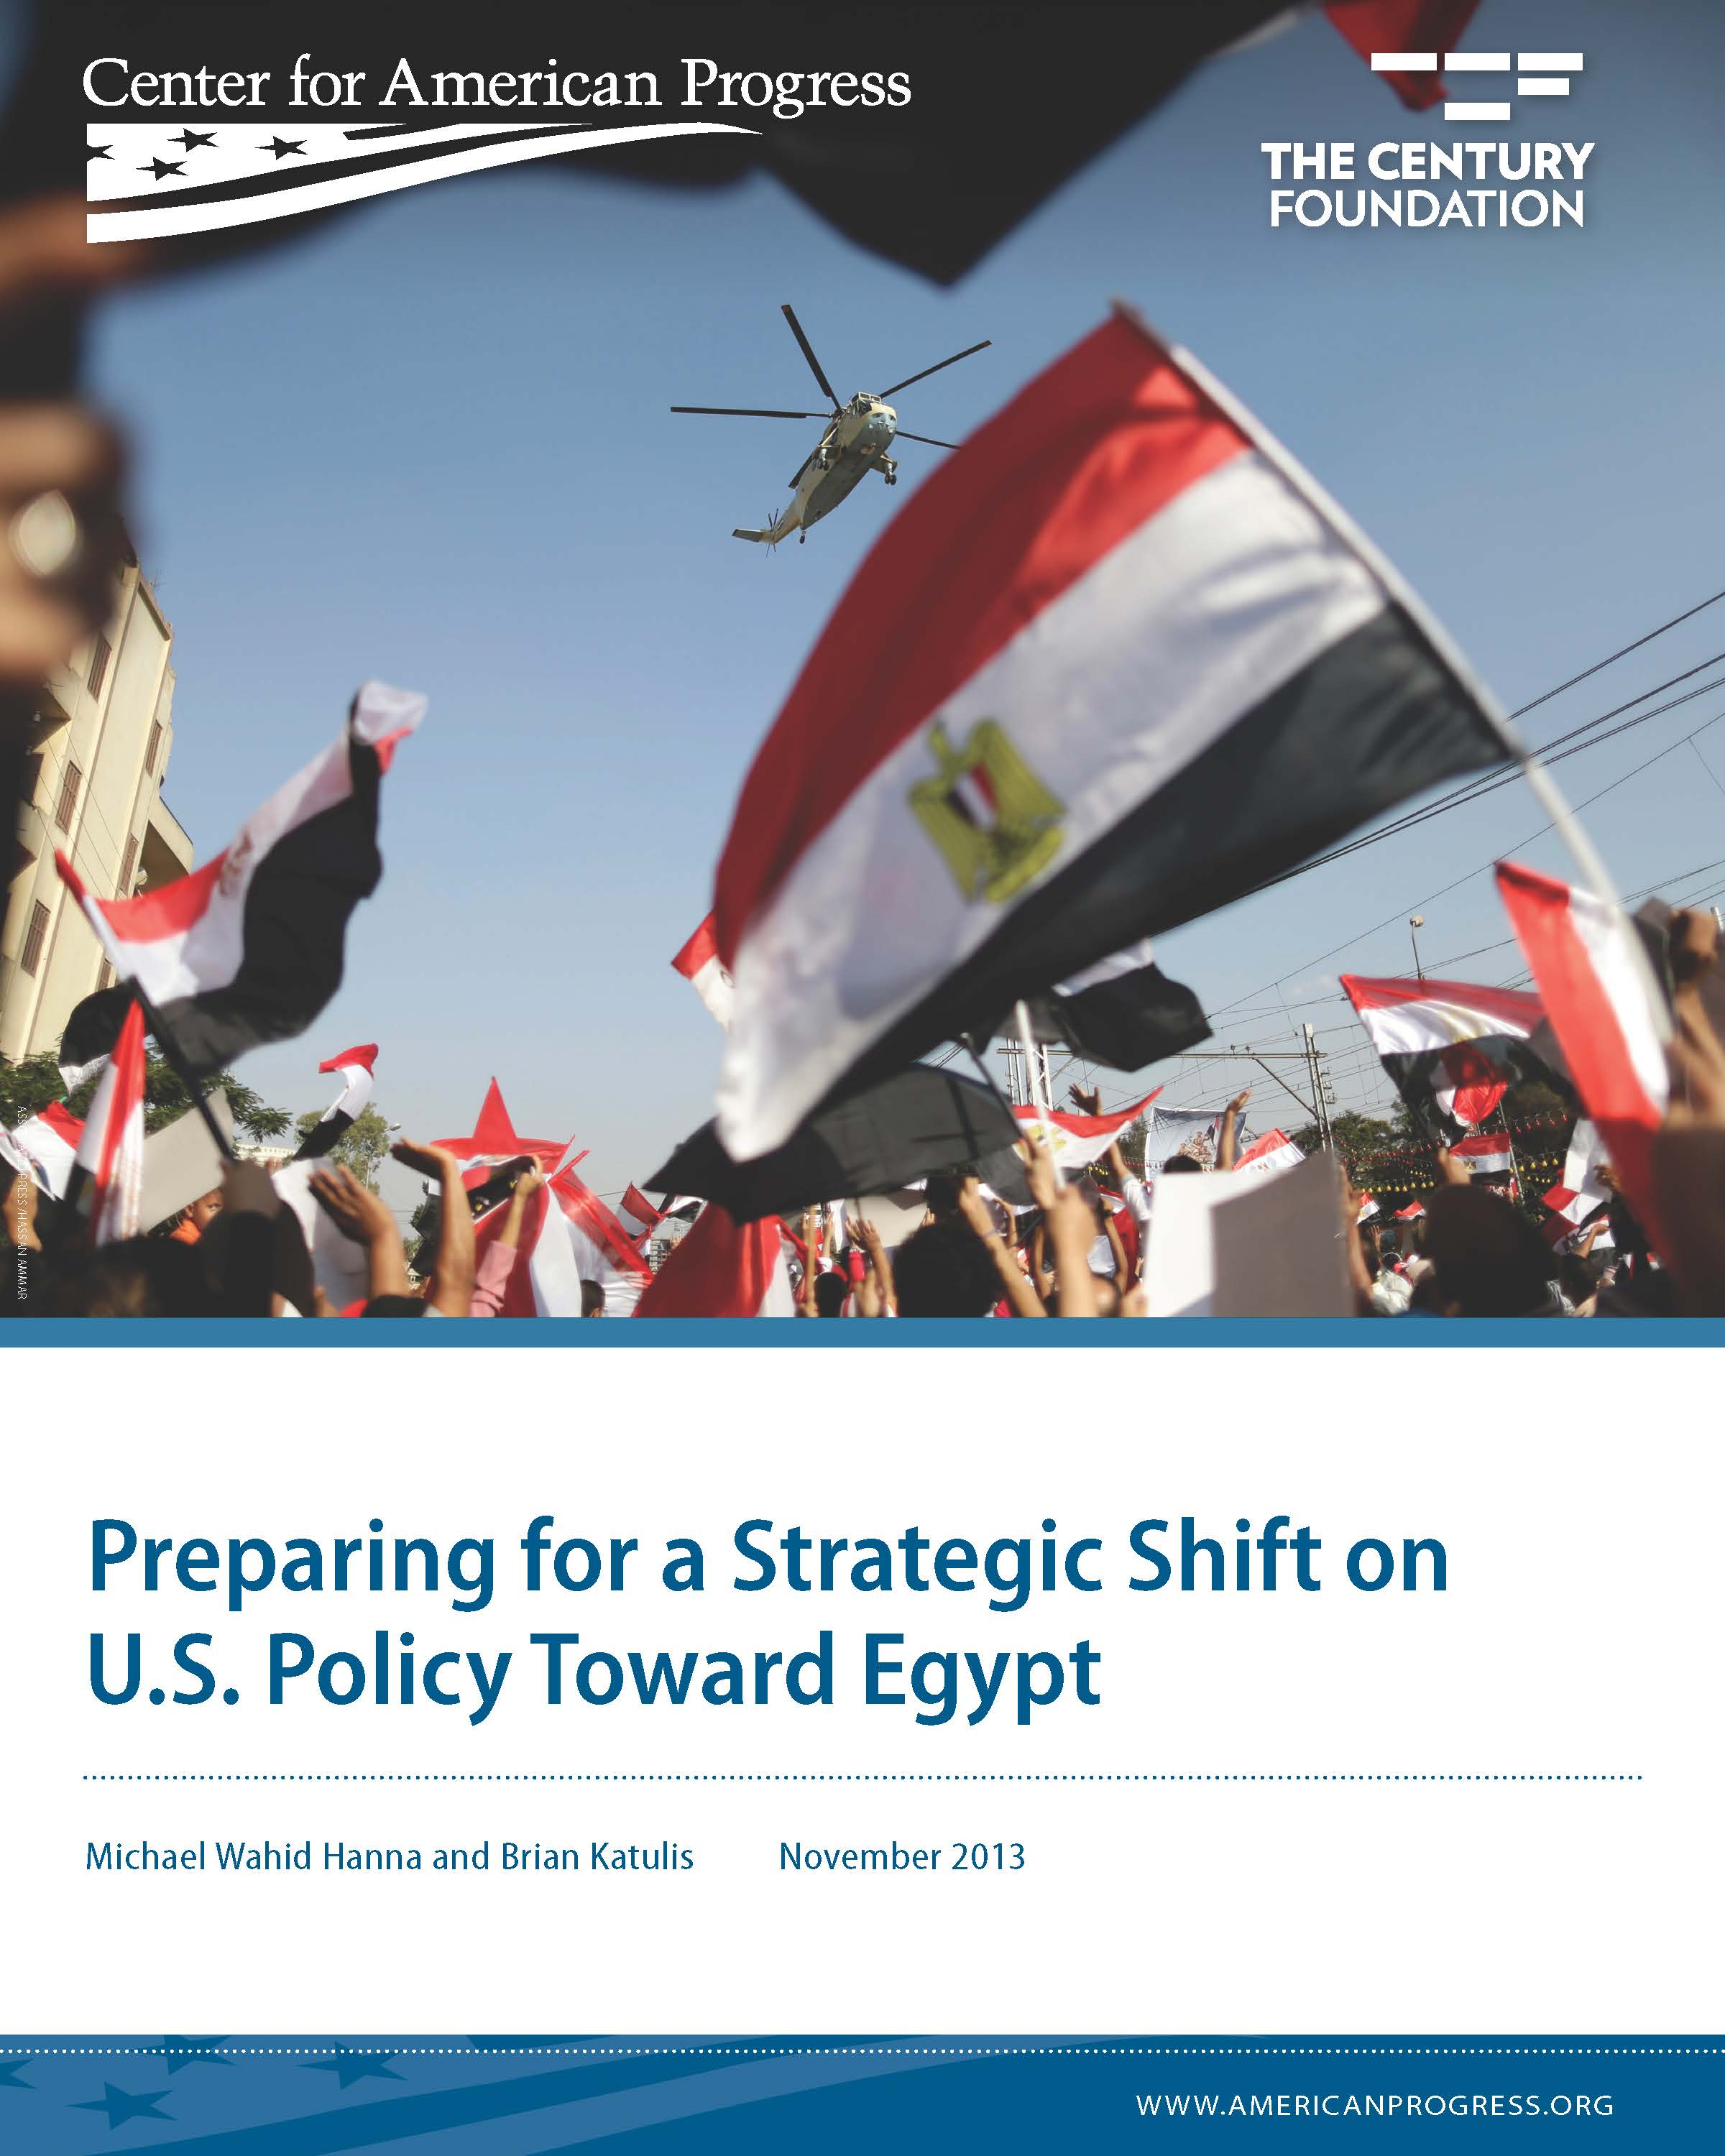 Preparing for a Strategic Shift on U.S. Policy Toward Egypt